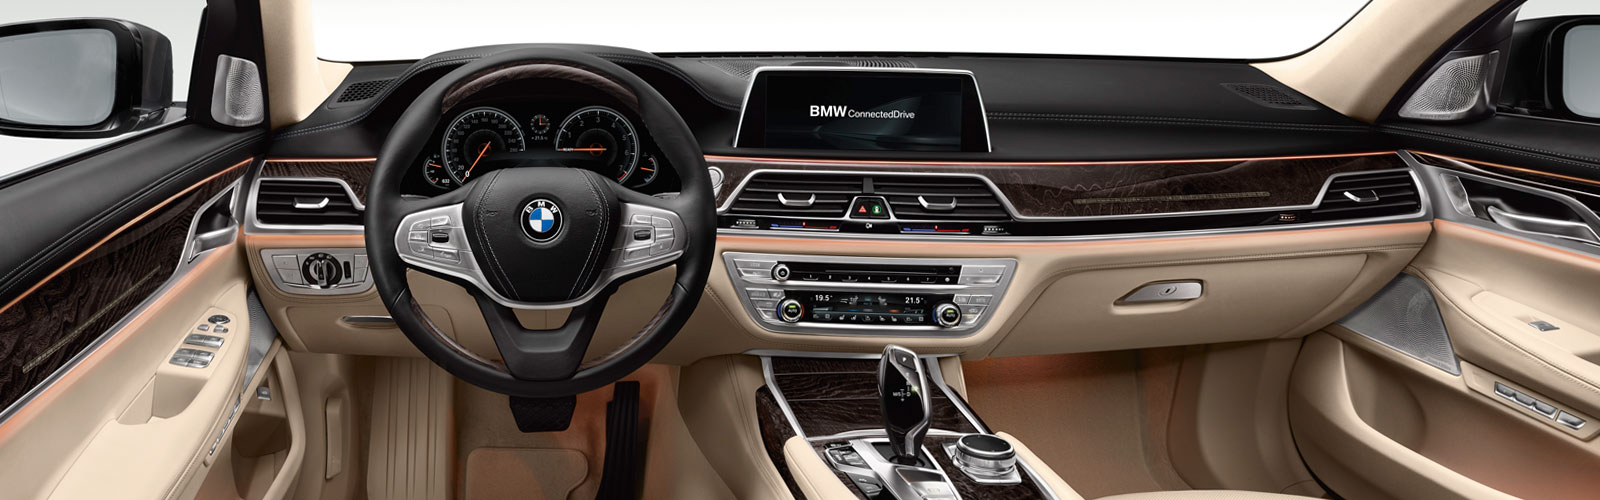 2018 bmw production schedule.  schedule bmw x7 styling to 2018 bmw production schedule u